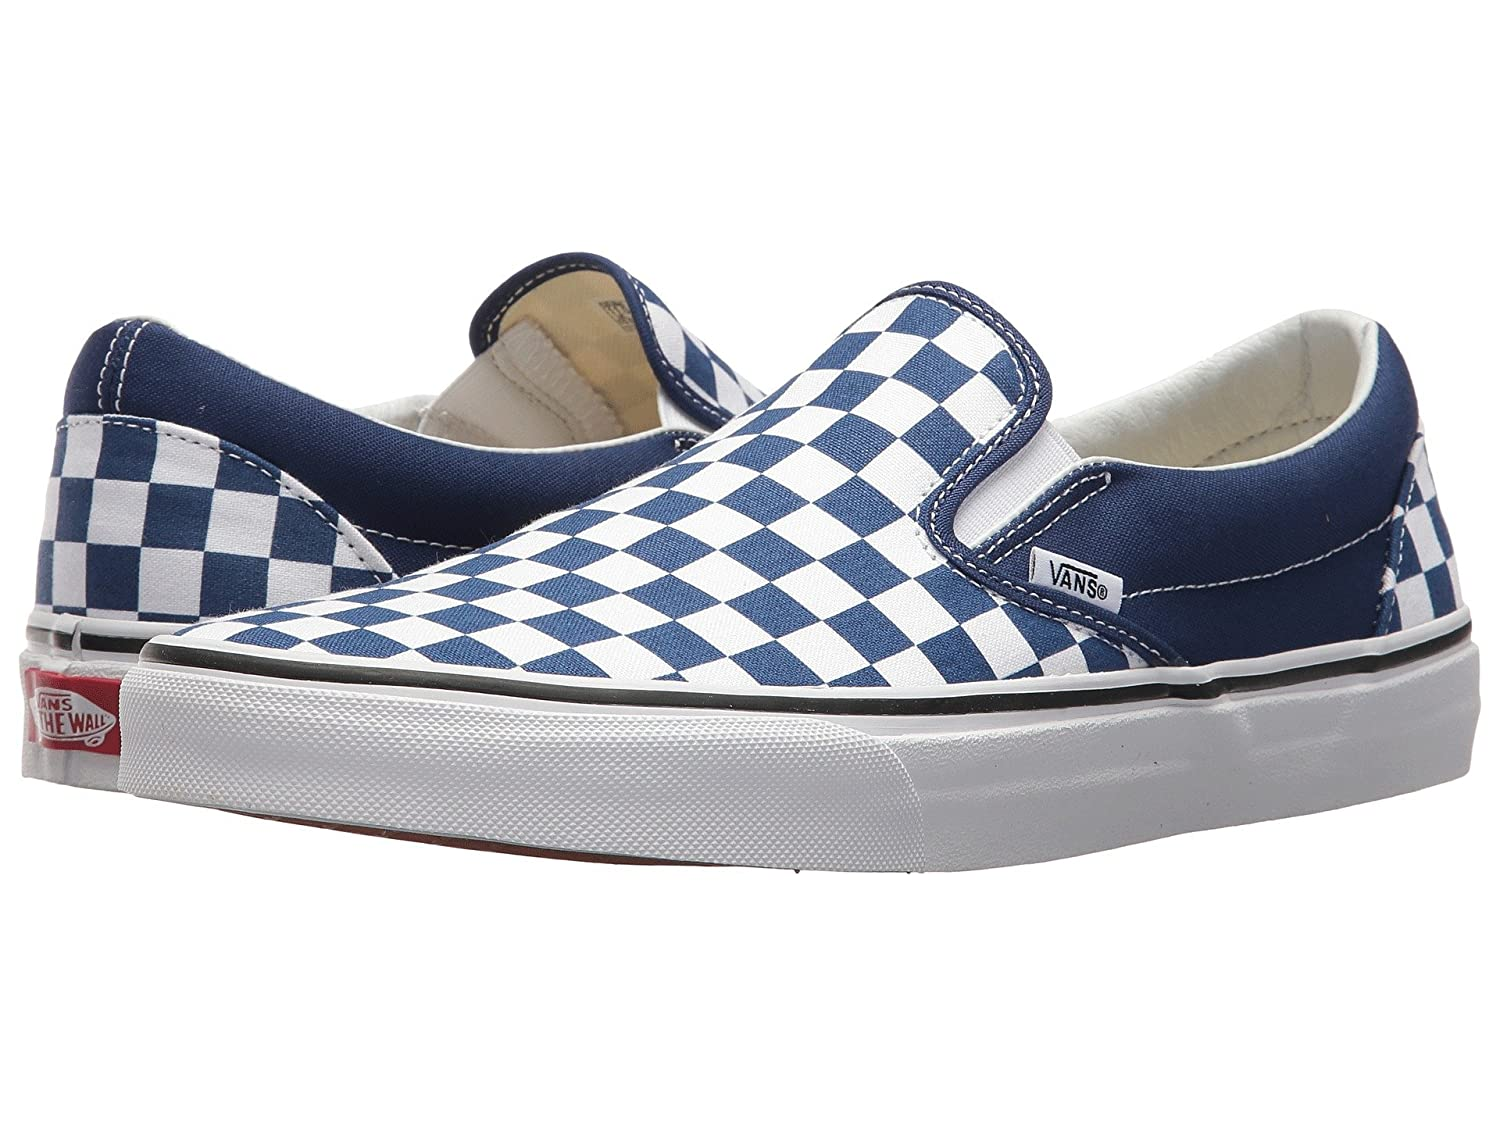 Vans Unisex Classic (Checkerboard) Slip-On Skate Shoe B07B4TCS9H 6.5 M US Women / 5 M US Men|(Checkerbord) Estate Blue/True White